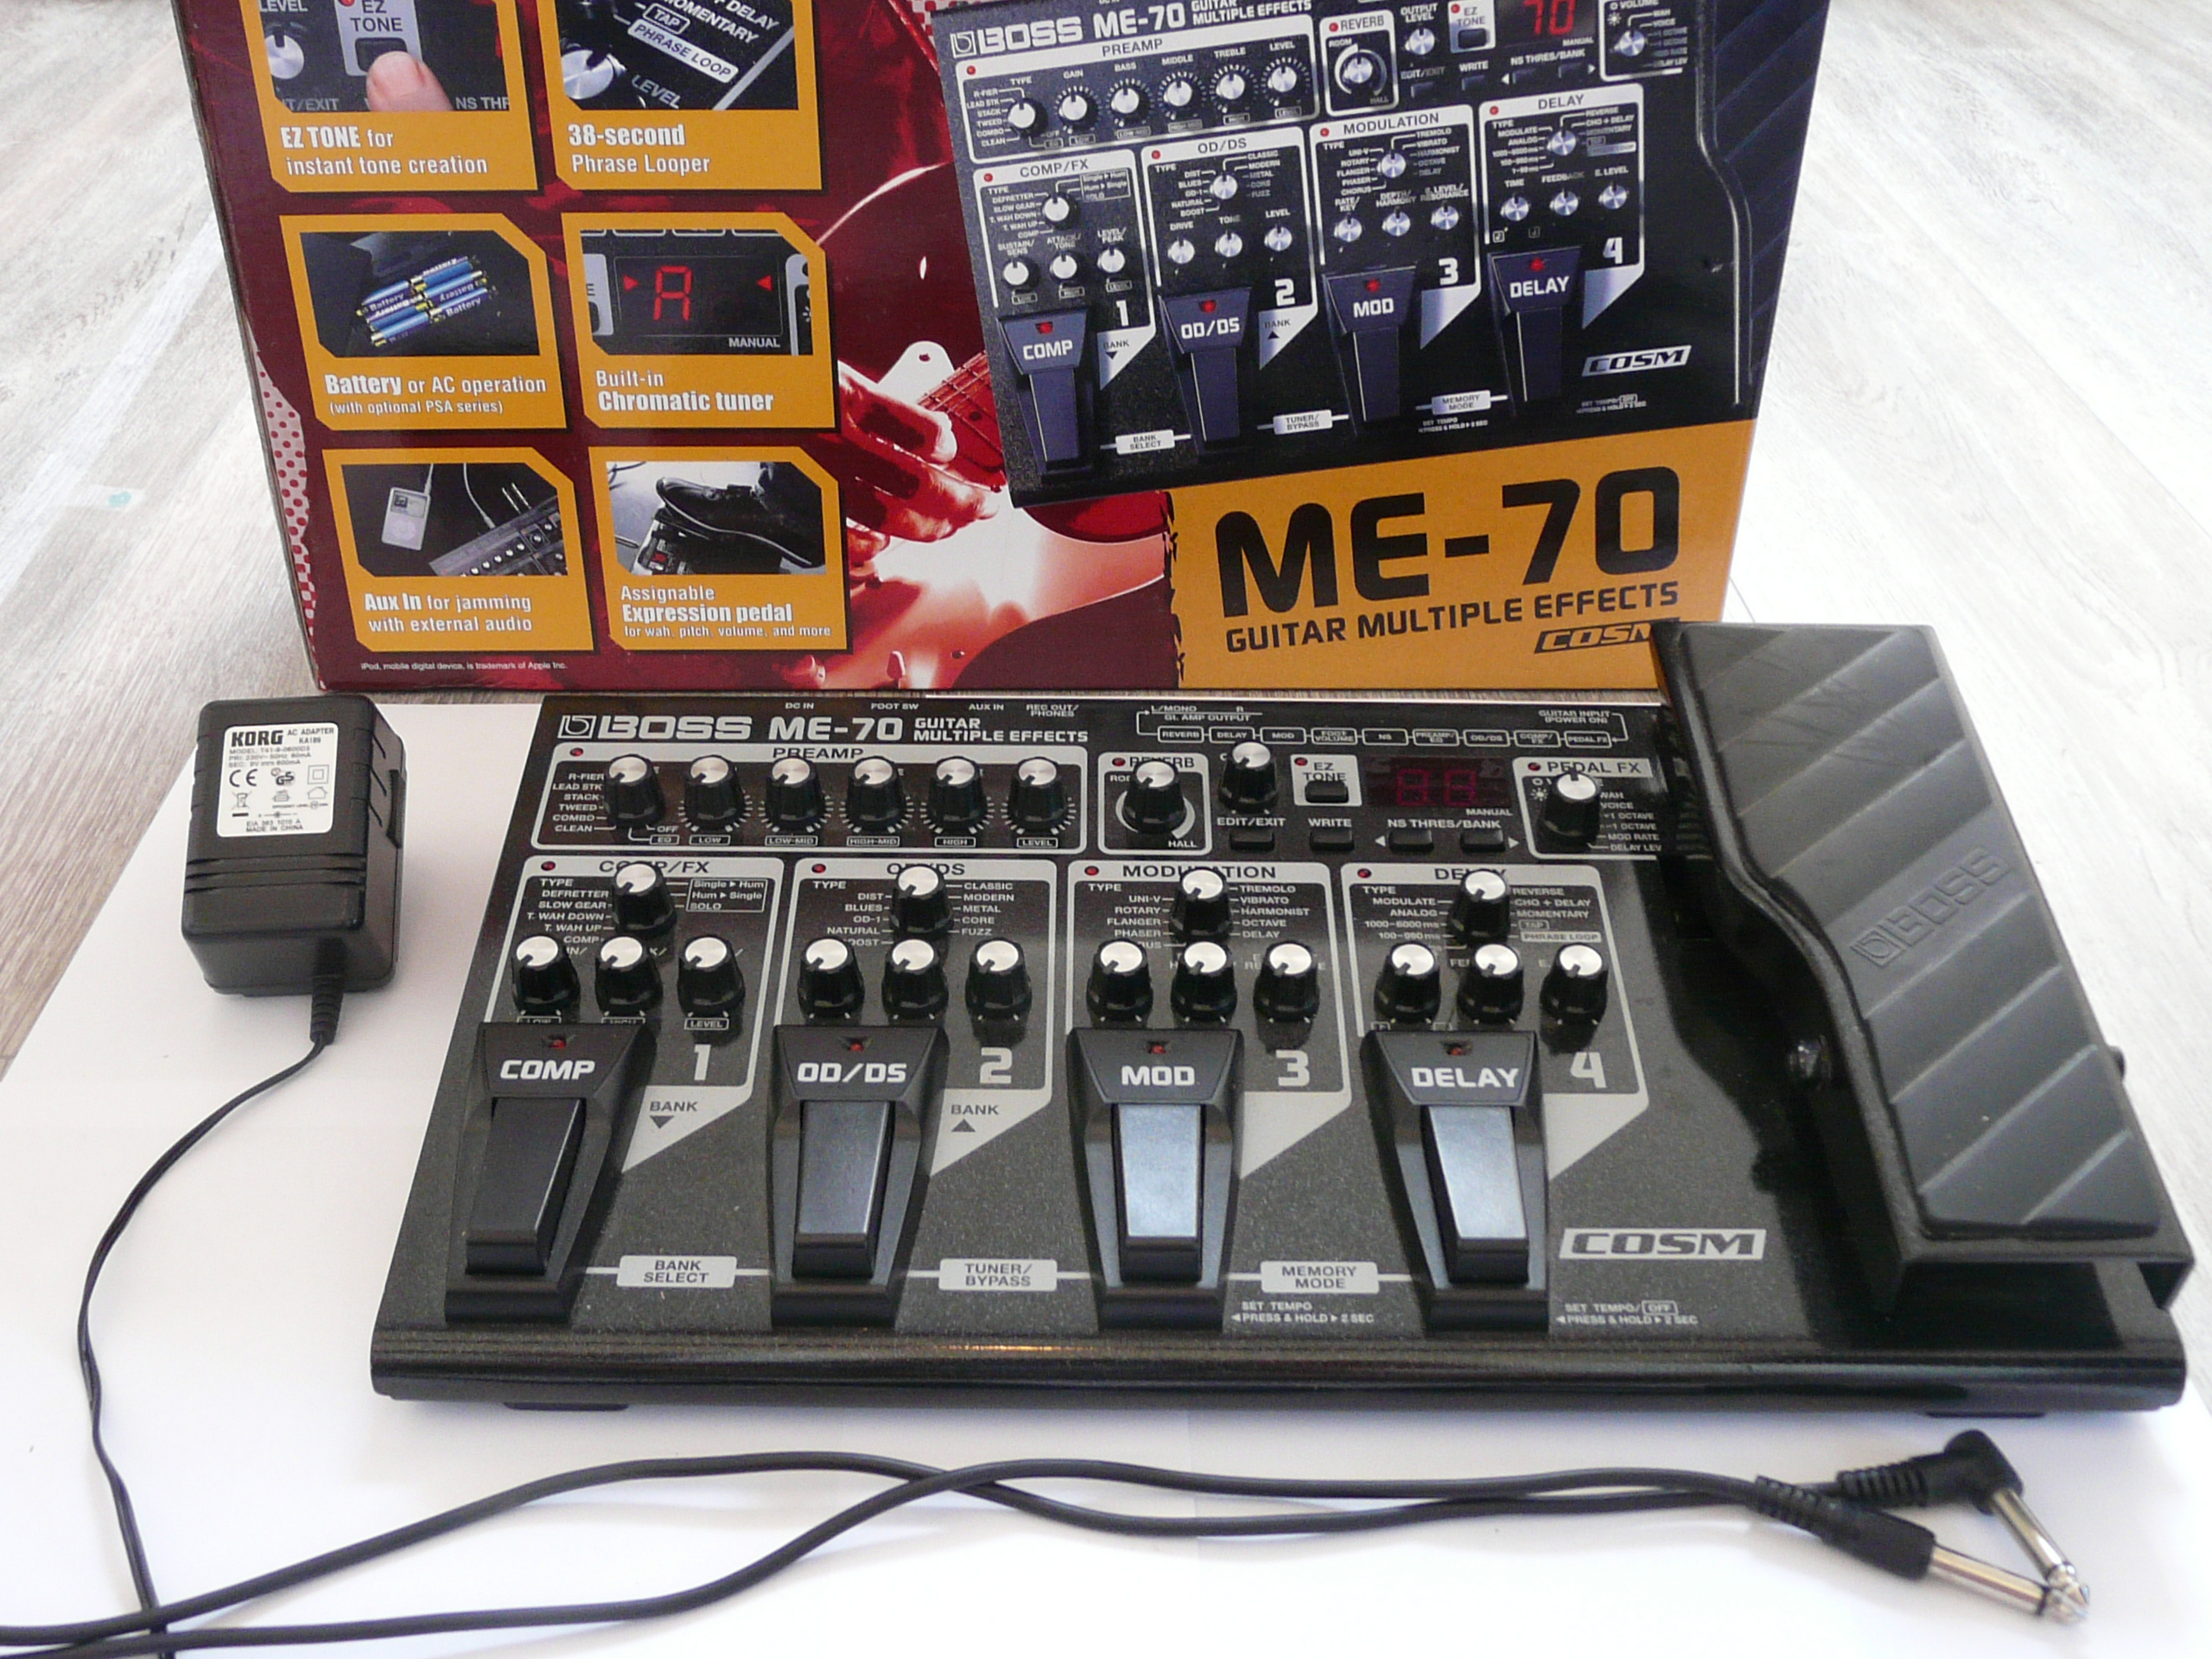 BOSS - ME-70 | Guitar Multiple Effects